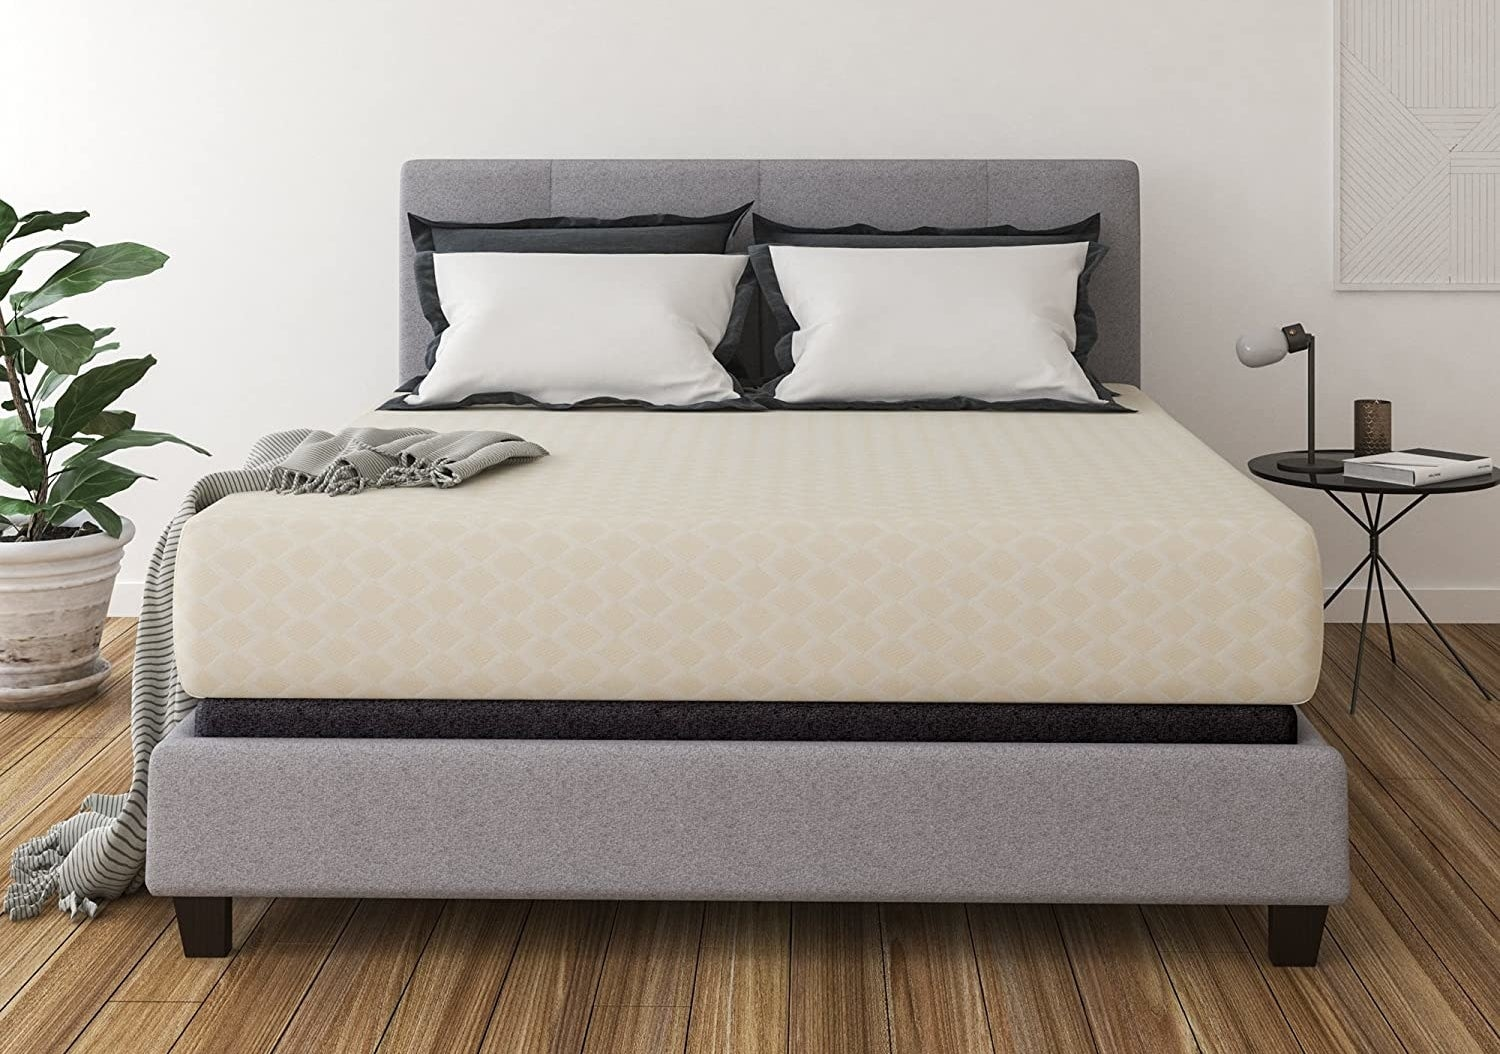 The mattress on top of a bed